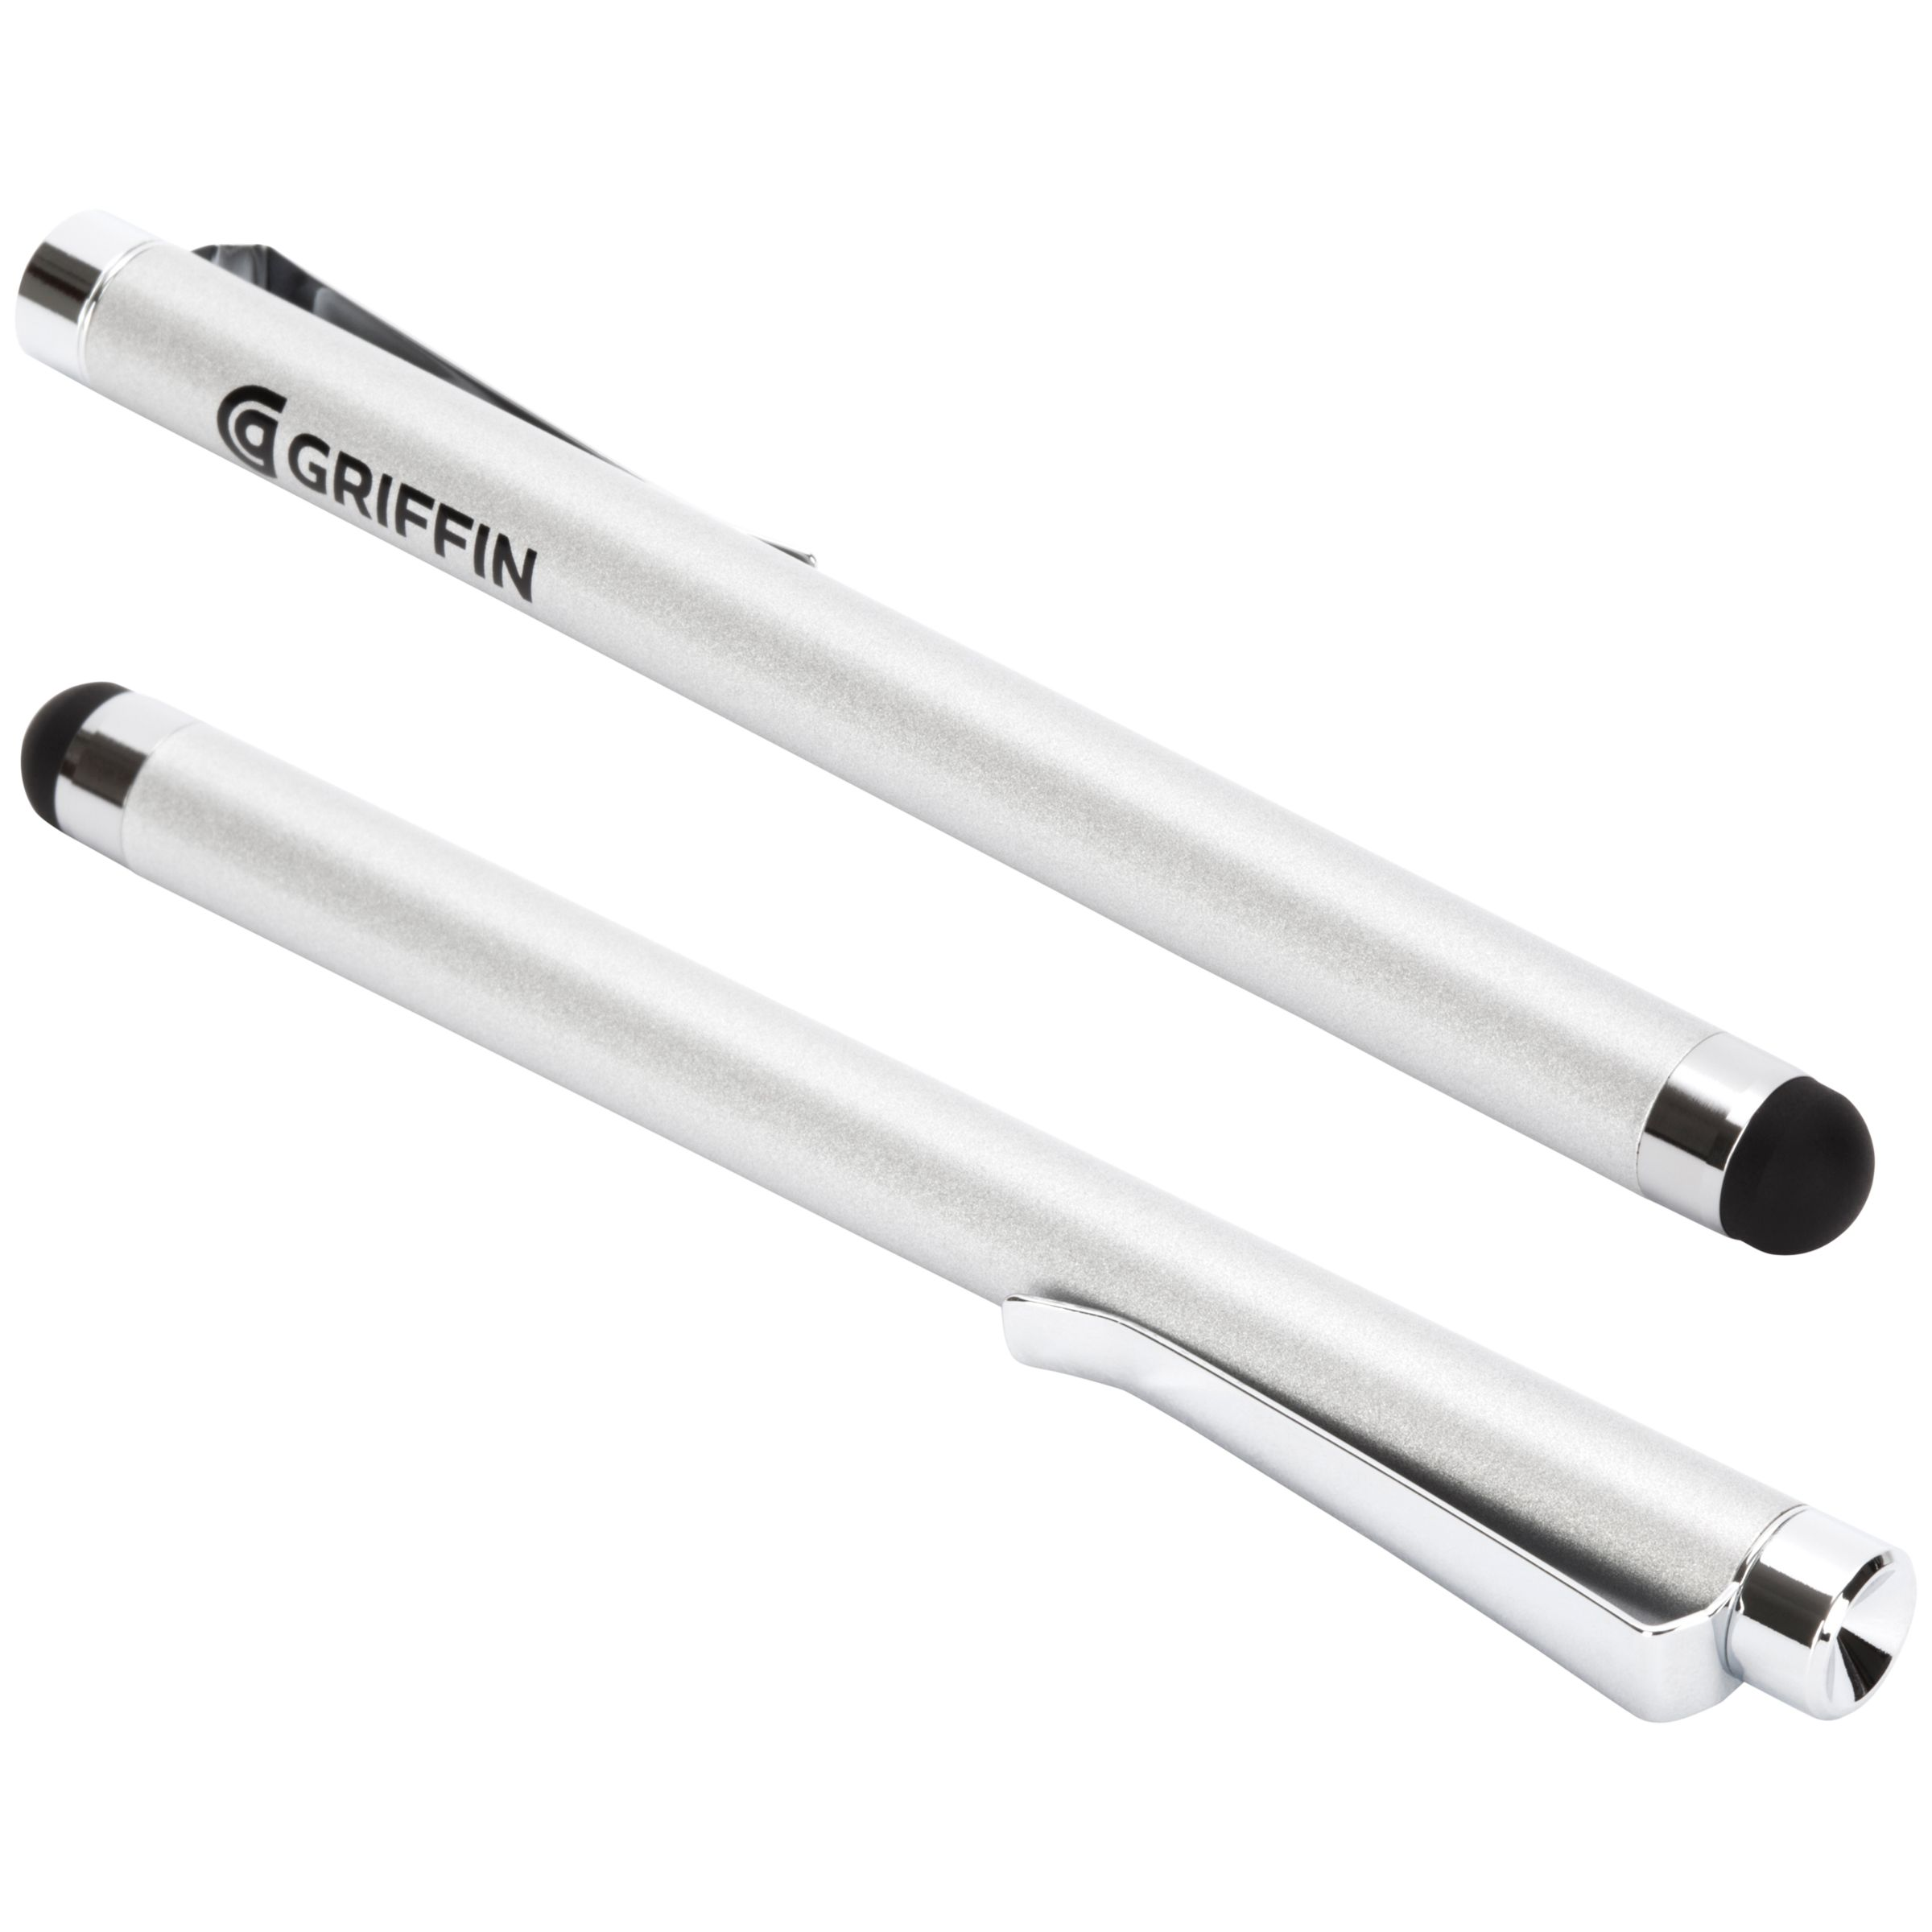 Griffin Griffin Stylus for iPad and Capacitive Touchscreens, Silver